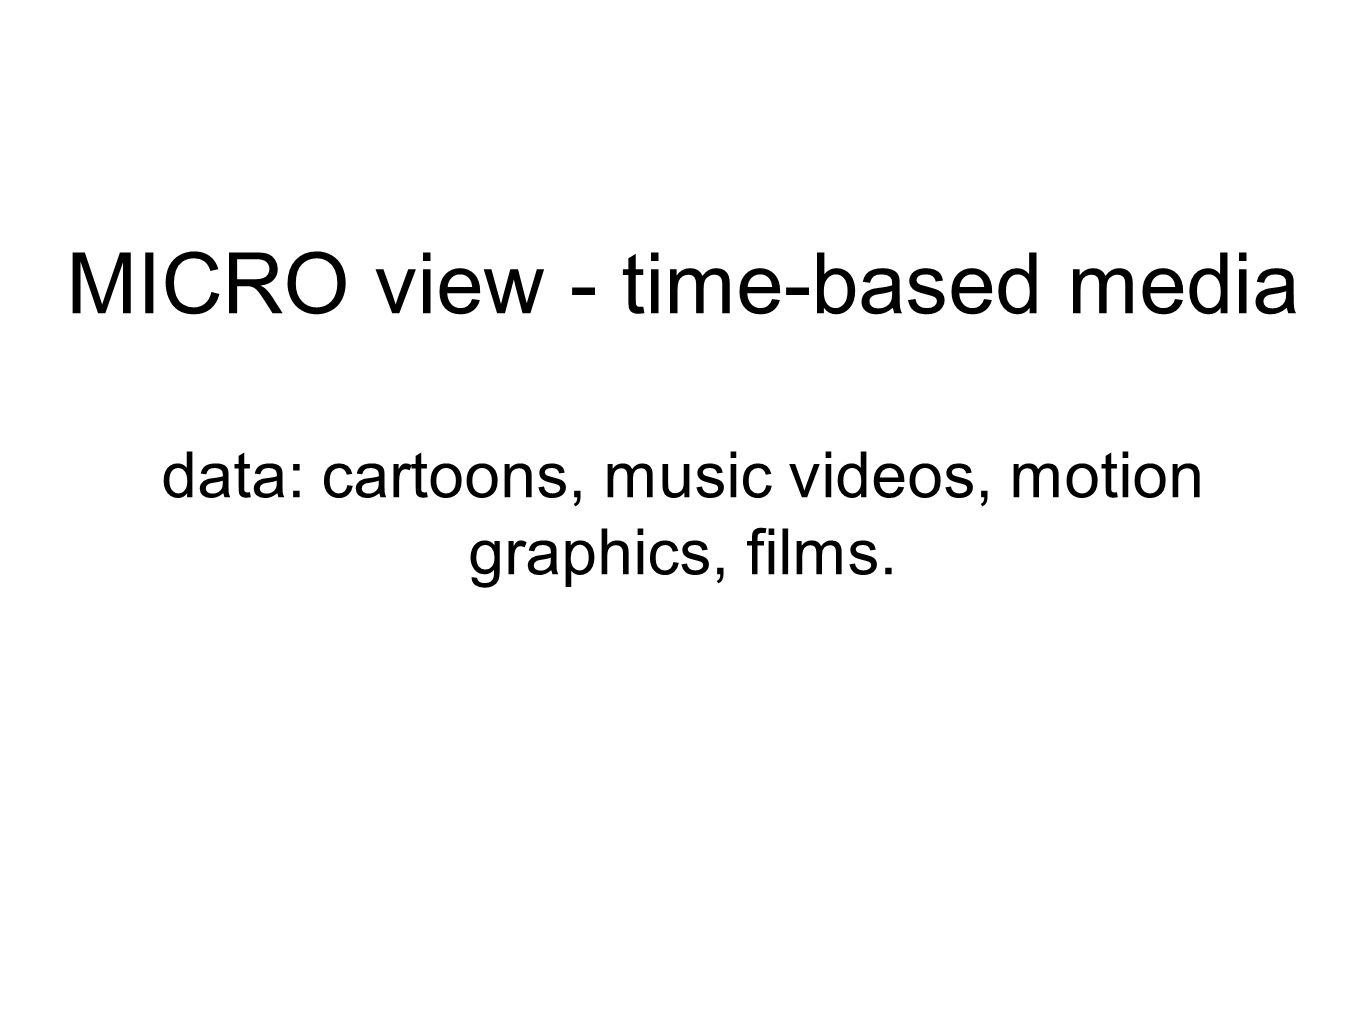 MICRO view - time-based media data: cartoons, music videos, motion graphics, films.